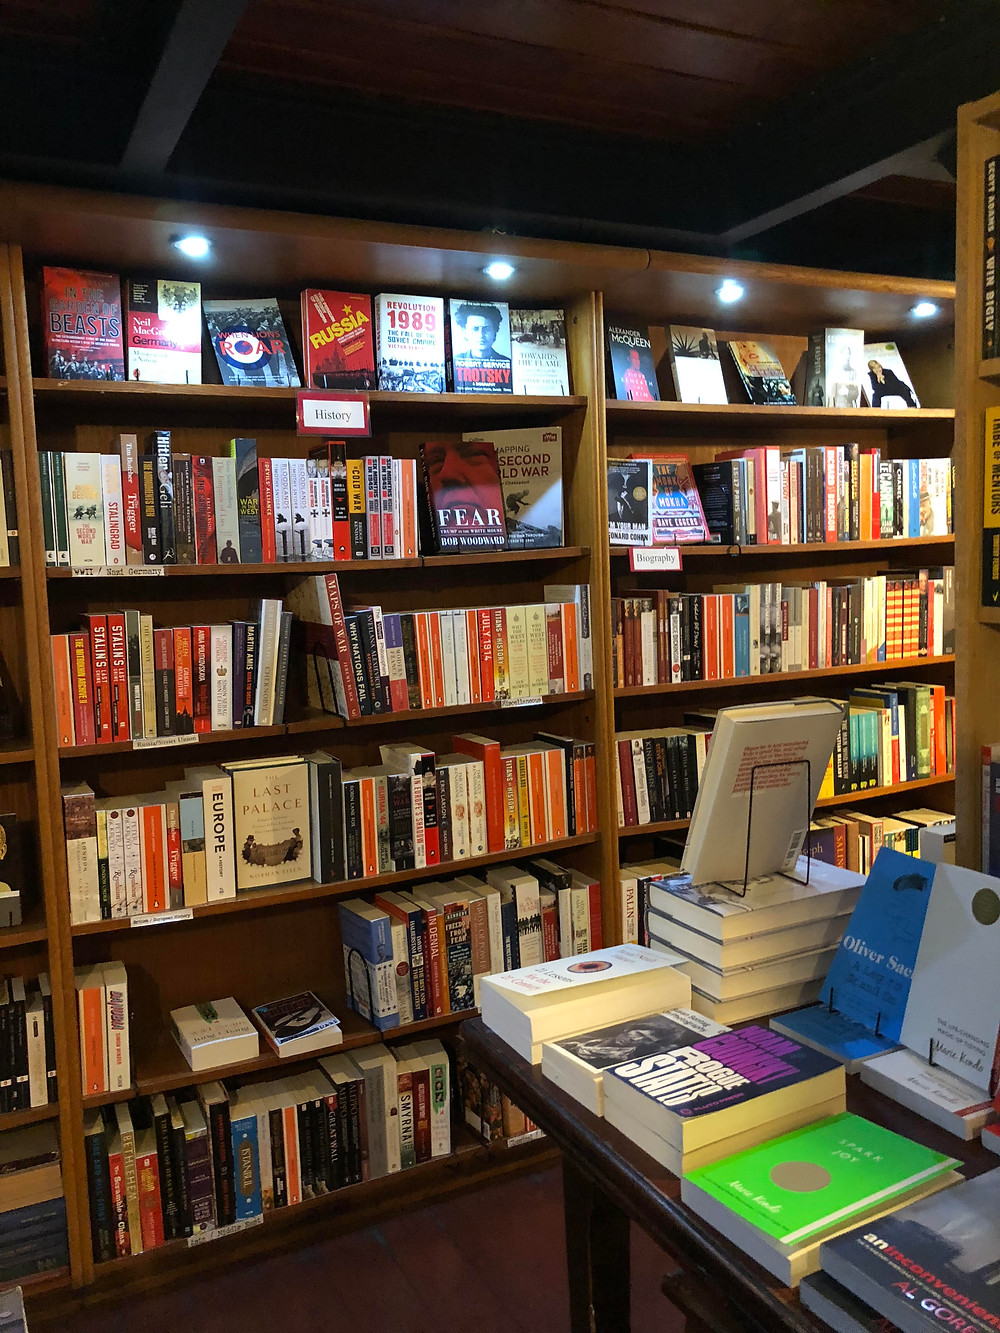 downstairs section of the store